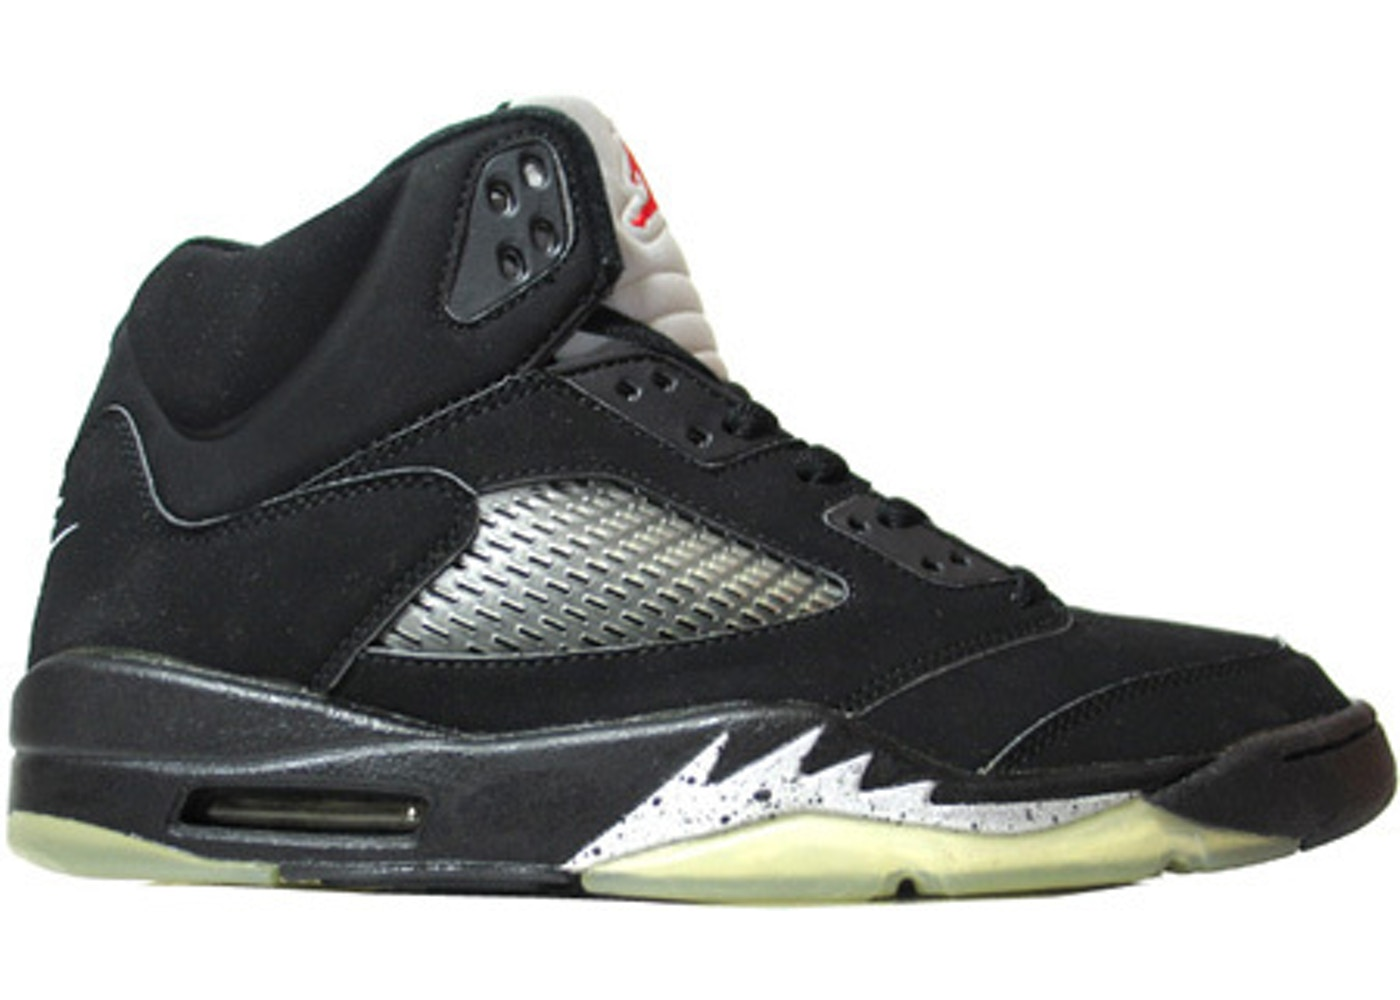 new product bd18d 3d82a Jordan 5 Retro Black Metallic (2000)